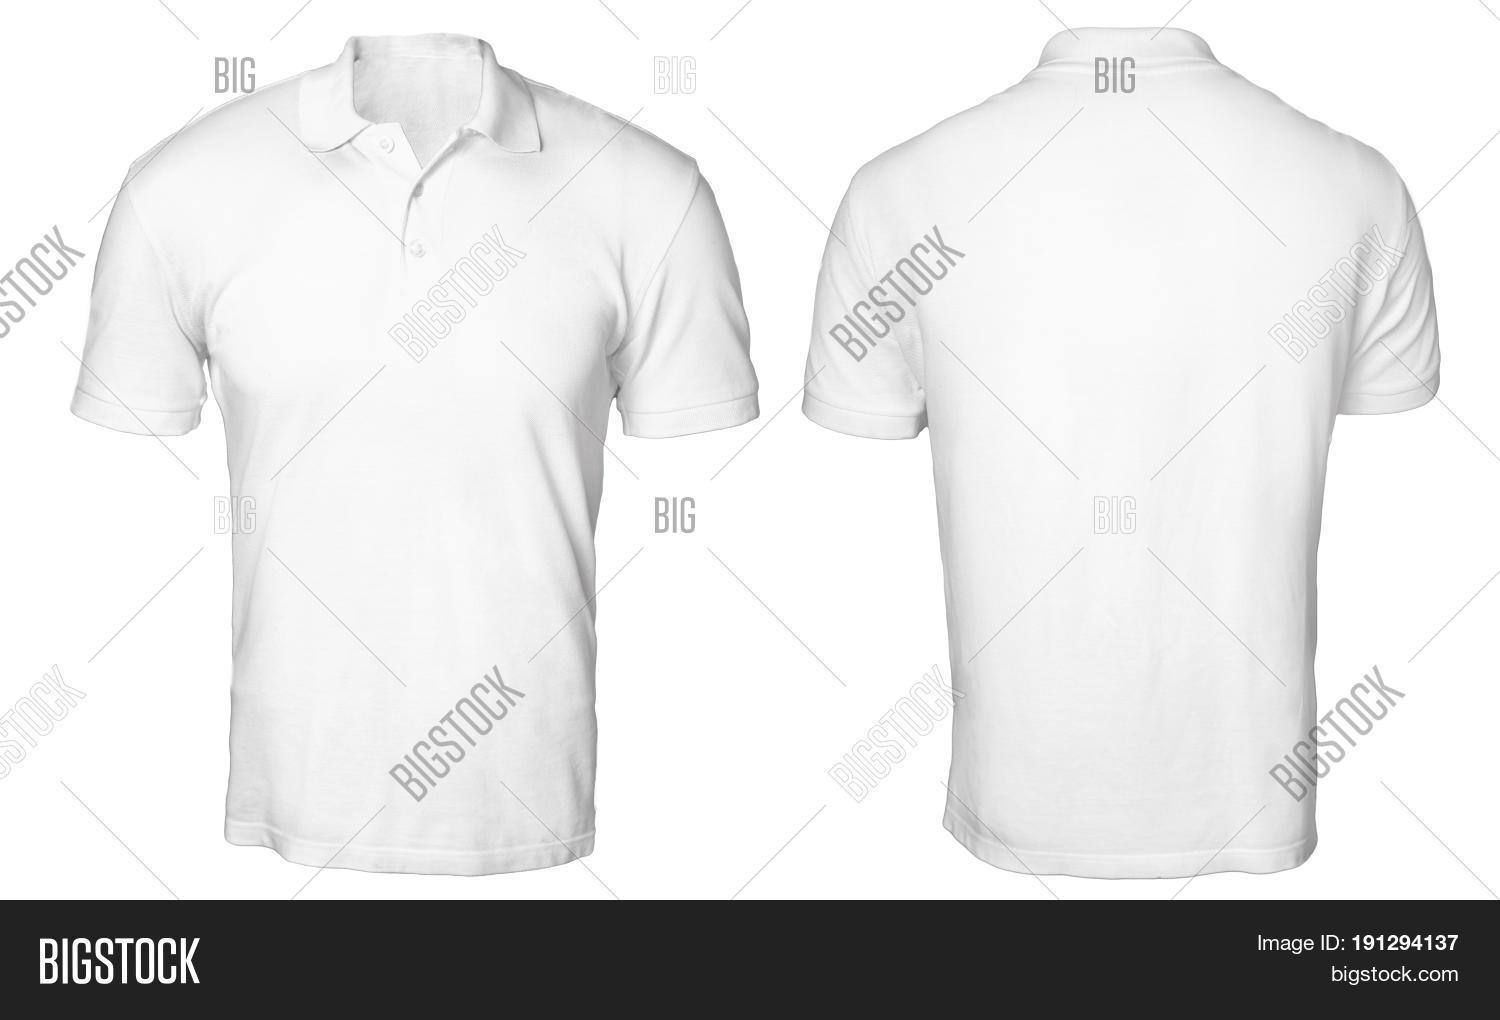 T shirt plain white front and back - Blank Polo Shirt Mock Up Template Front And Back View Isolated On White Plain T